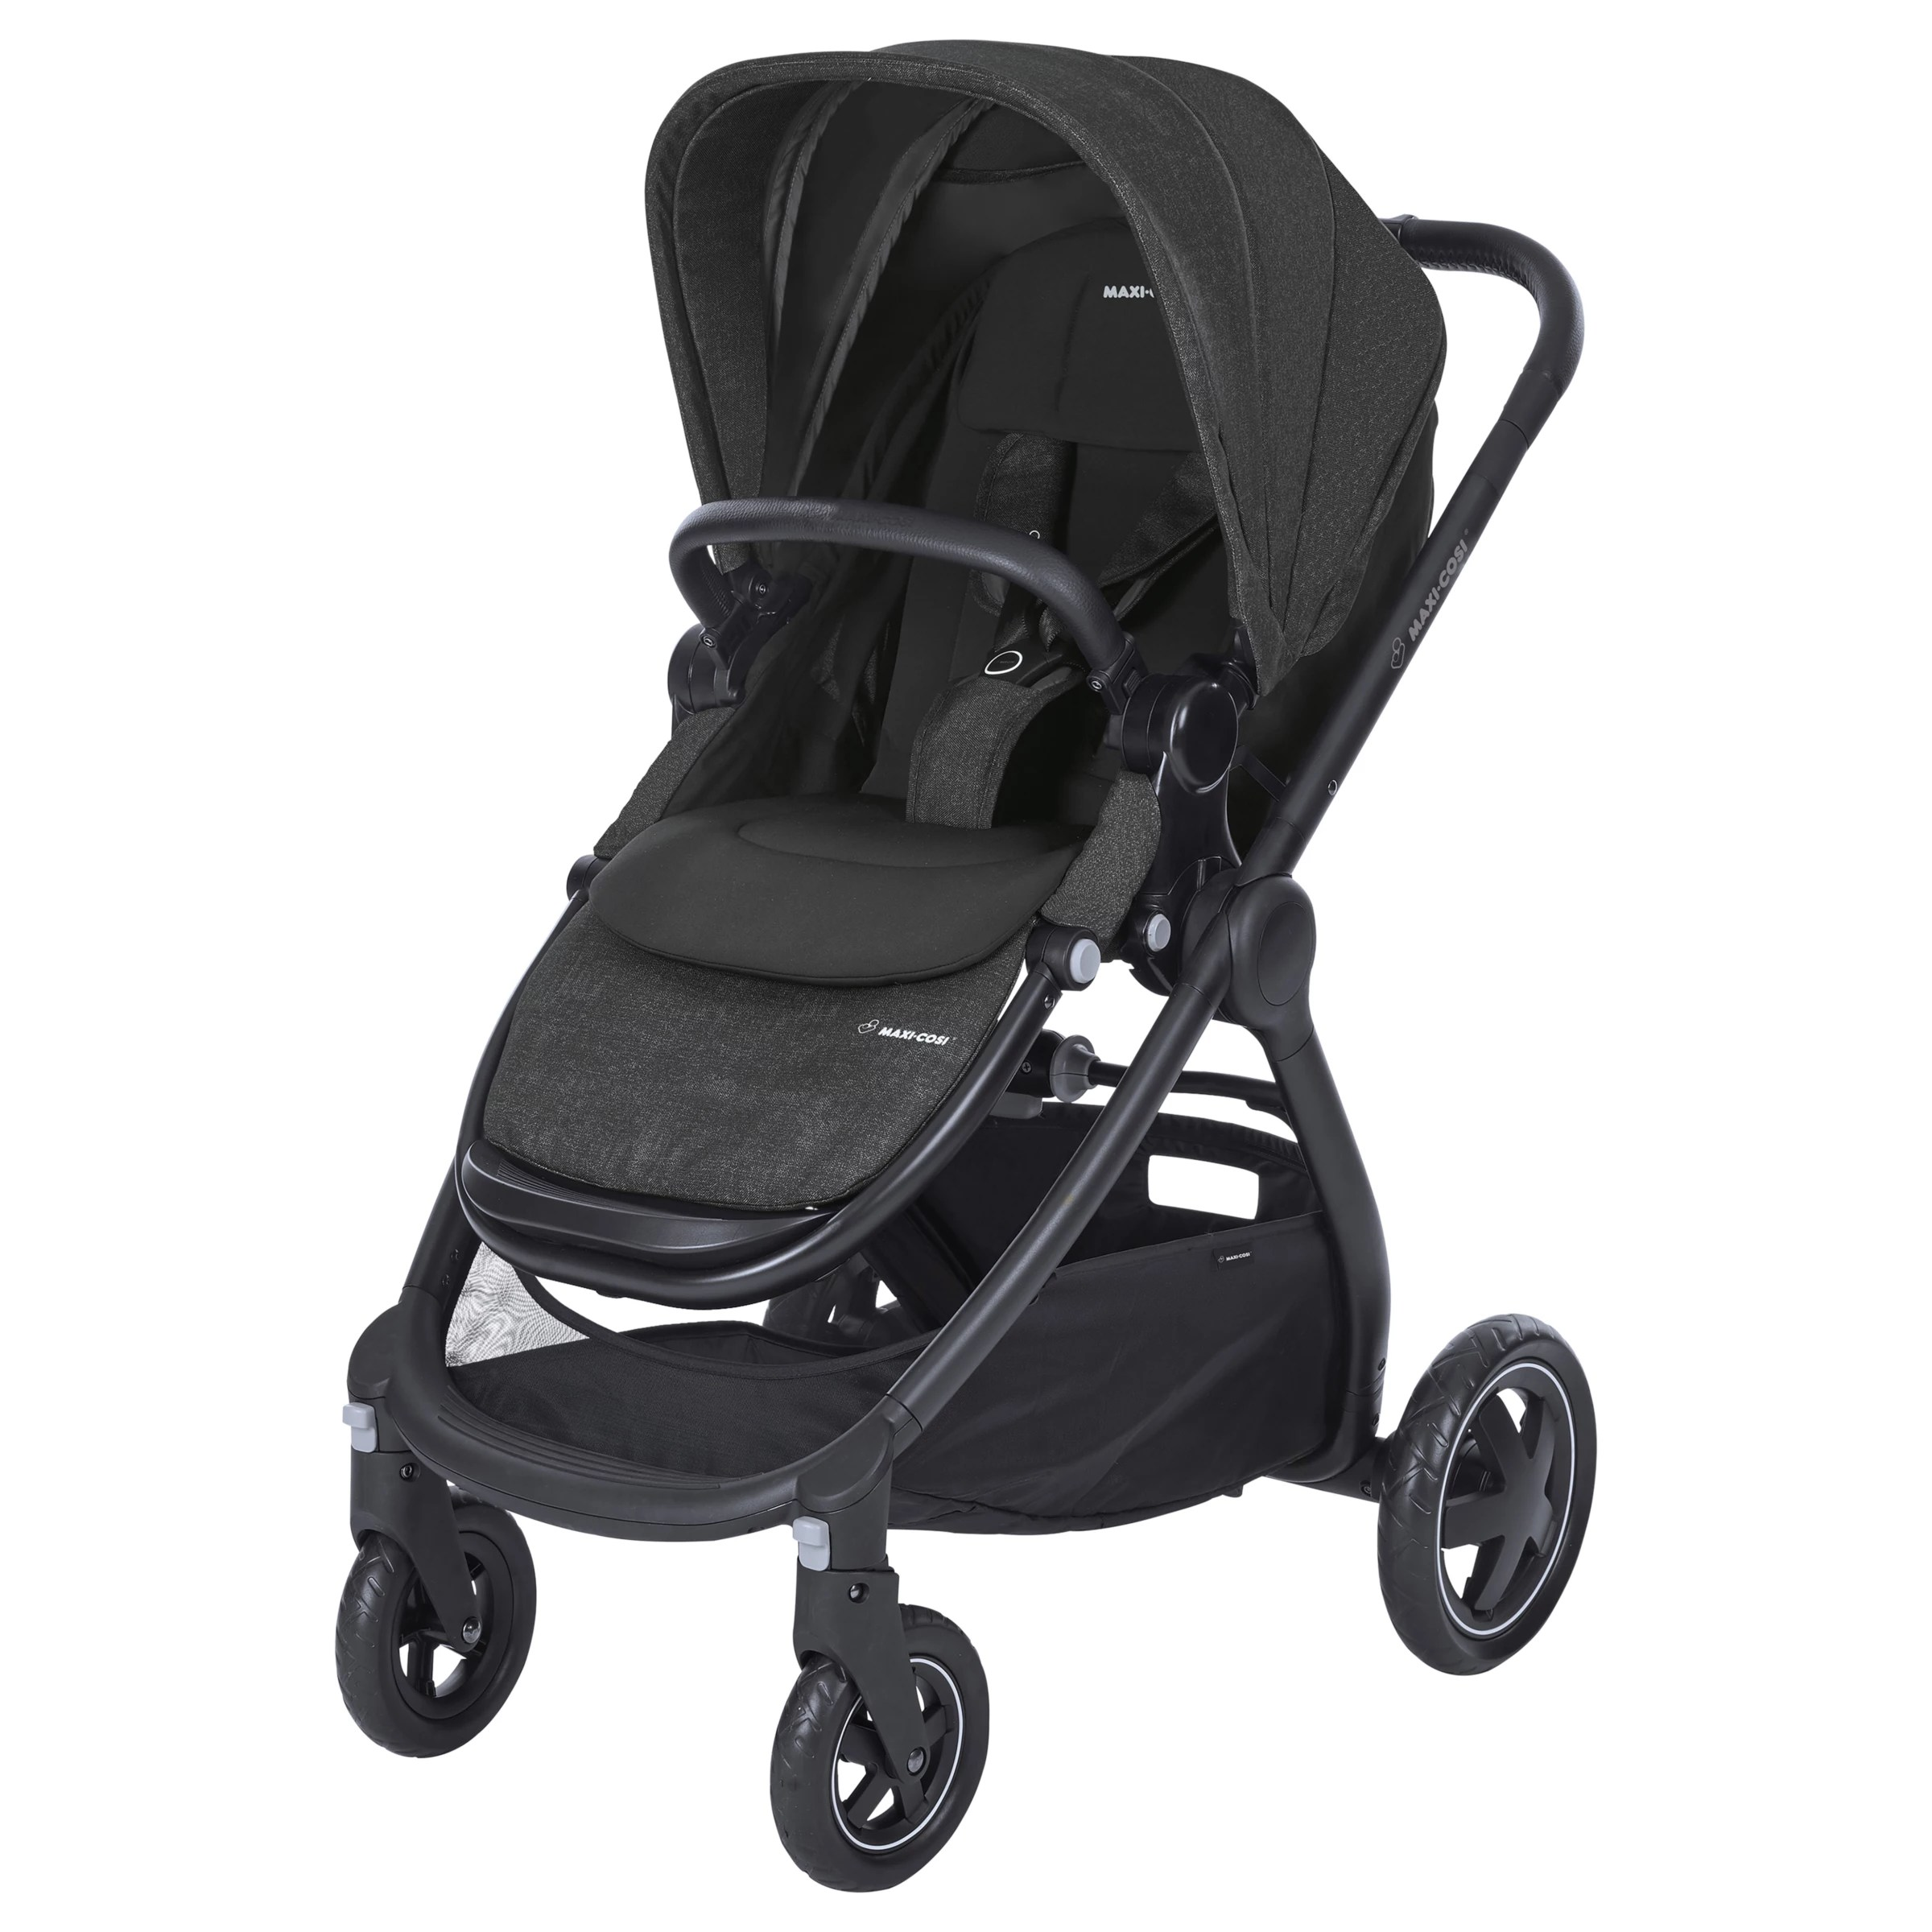 Best City Pushchairs Maxi Cosi Adorra Pushchair Nomad Black At John Lewis